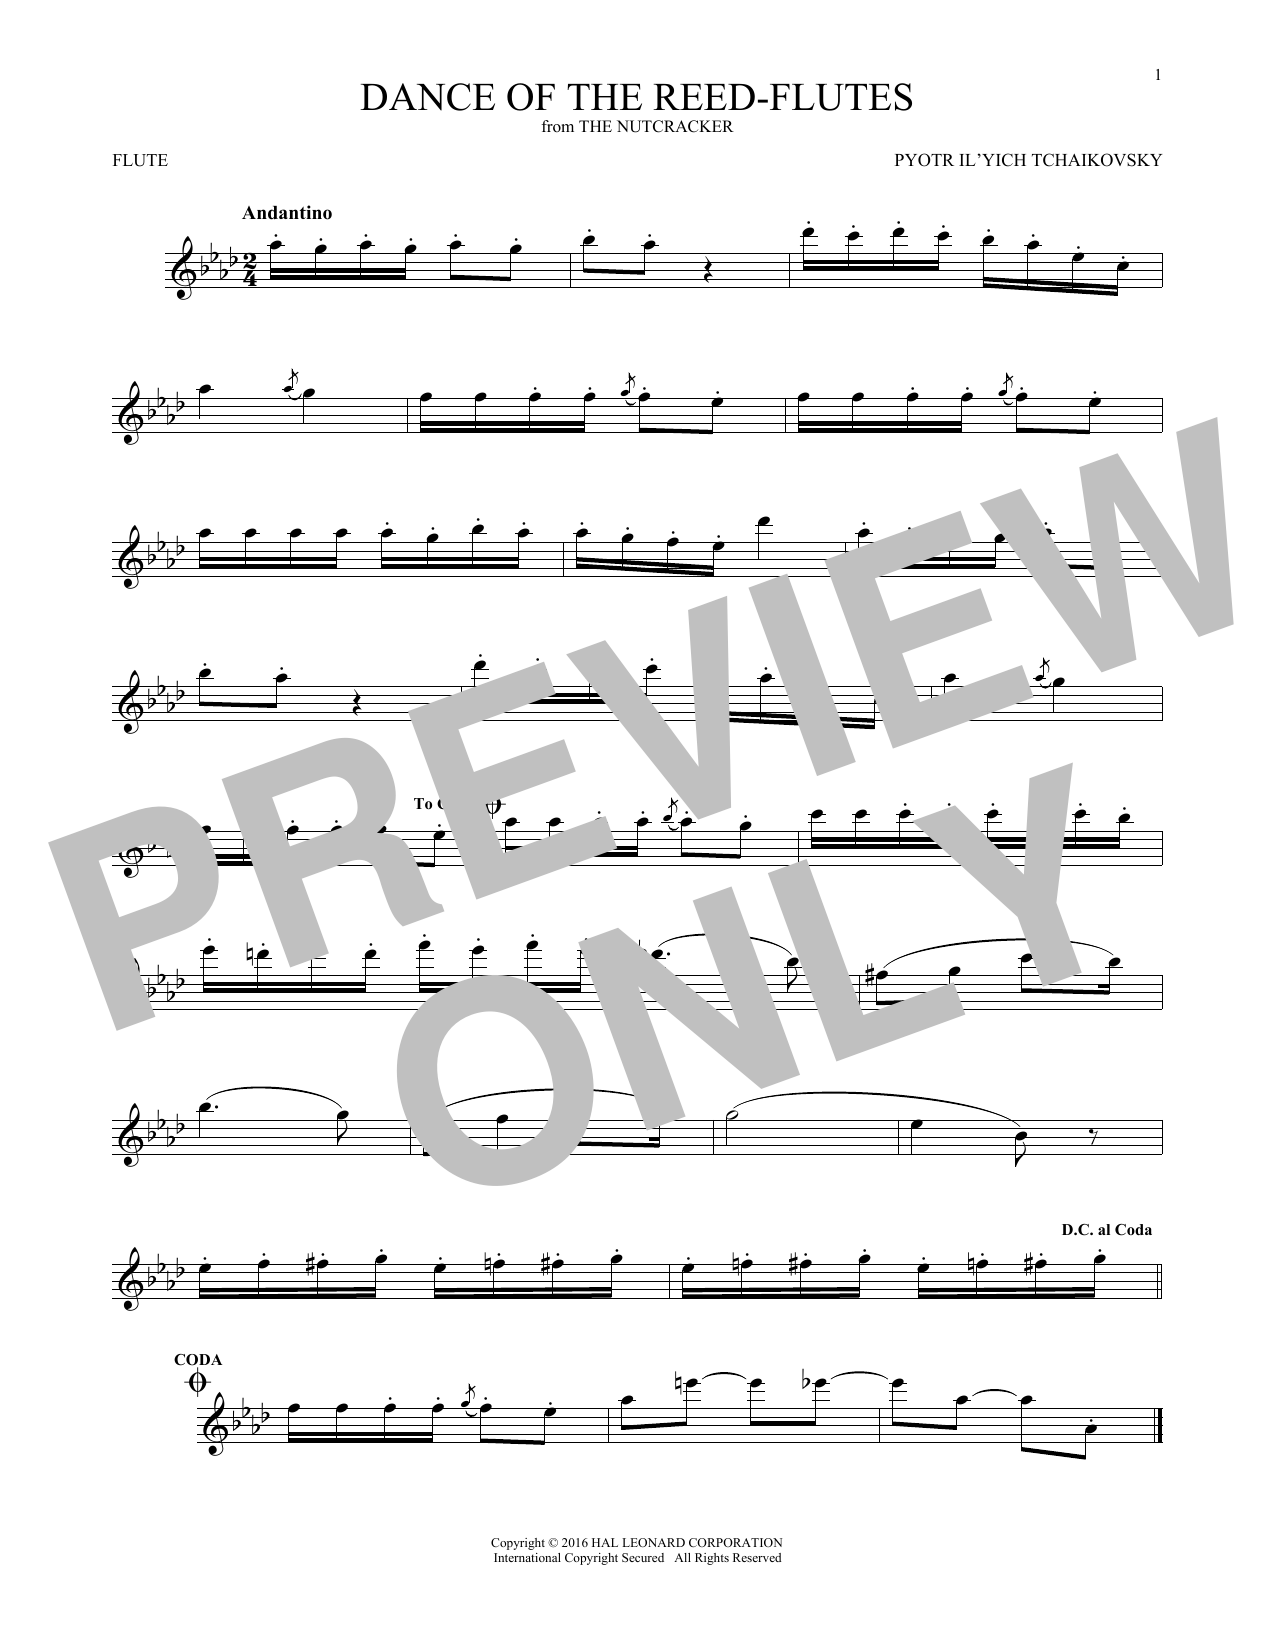 Pyotr Il'yich Tchaikovsky Dance Of The Reed Flutes, Op. 71a sheet music notes and chords. Download Printable PDF.